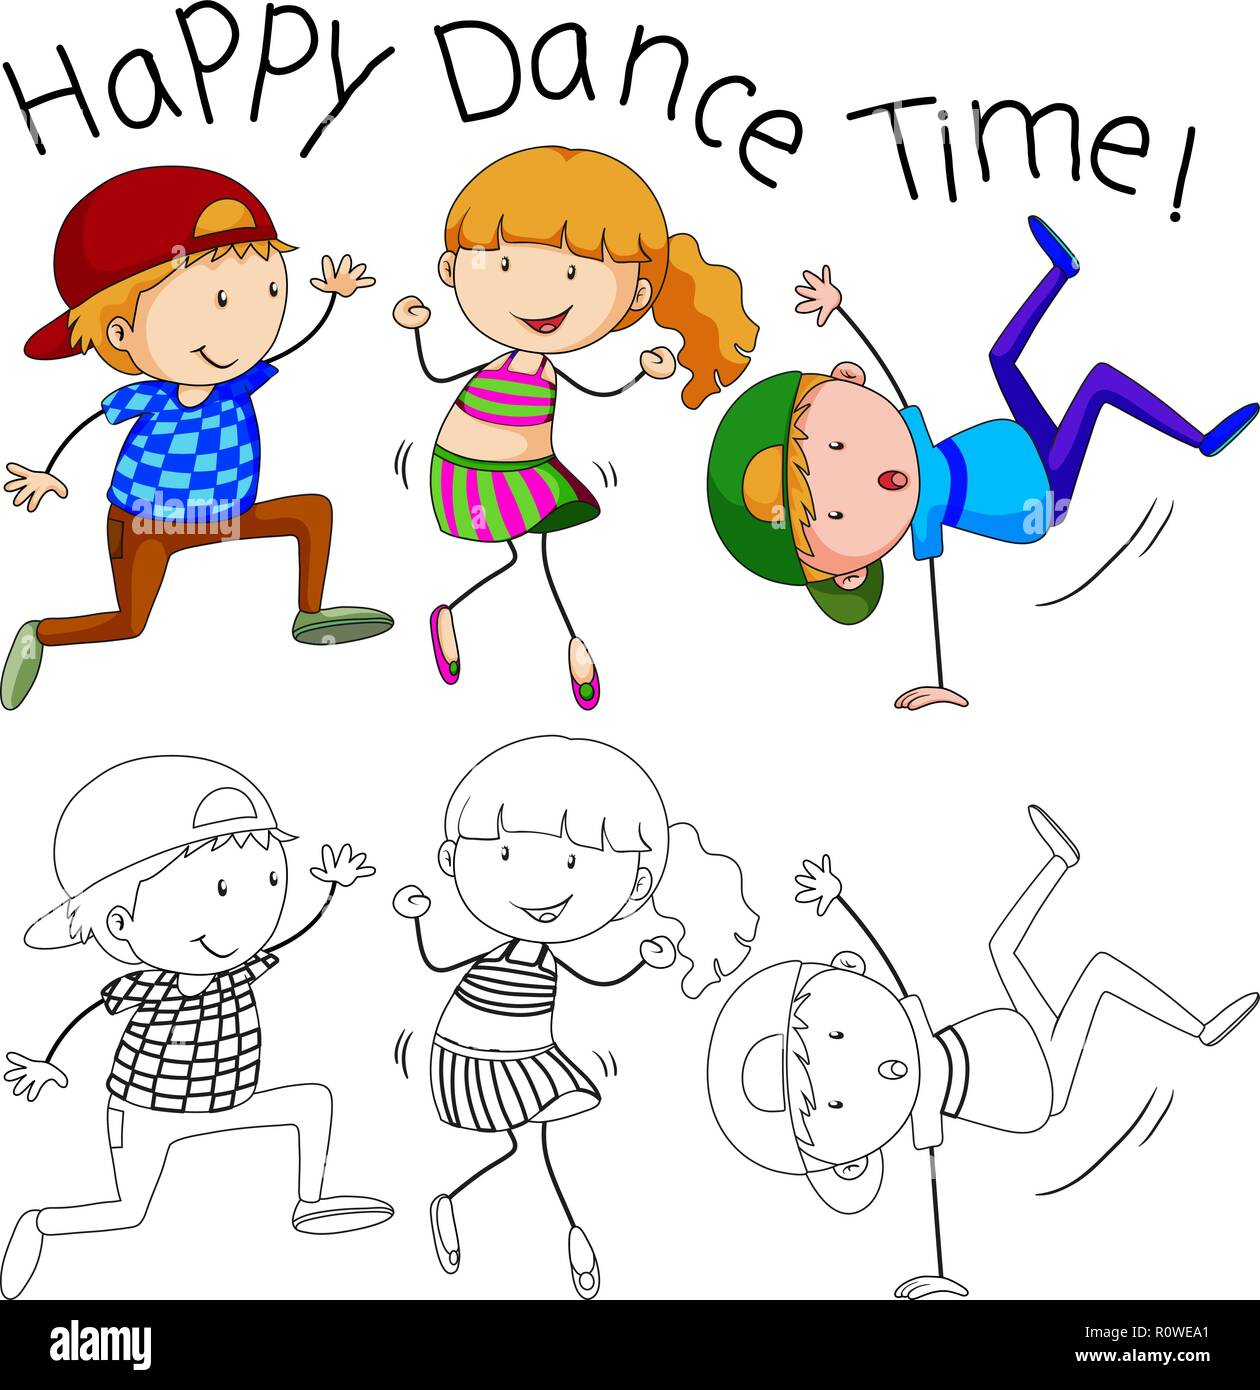 Doodle Happy Dancer Character Illustration Stock Vector Image Art Alamy